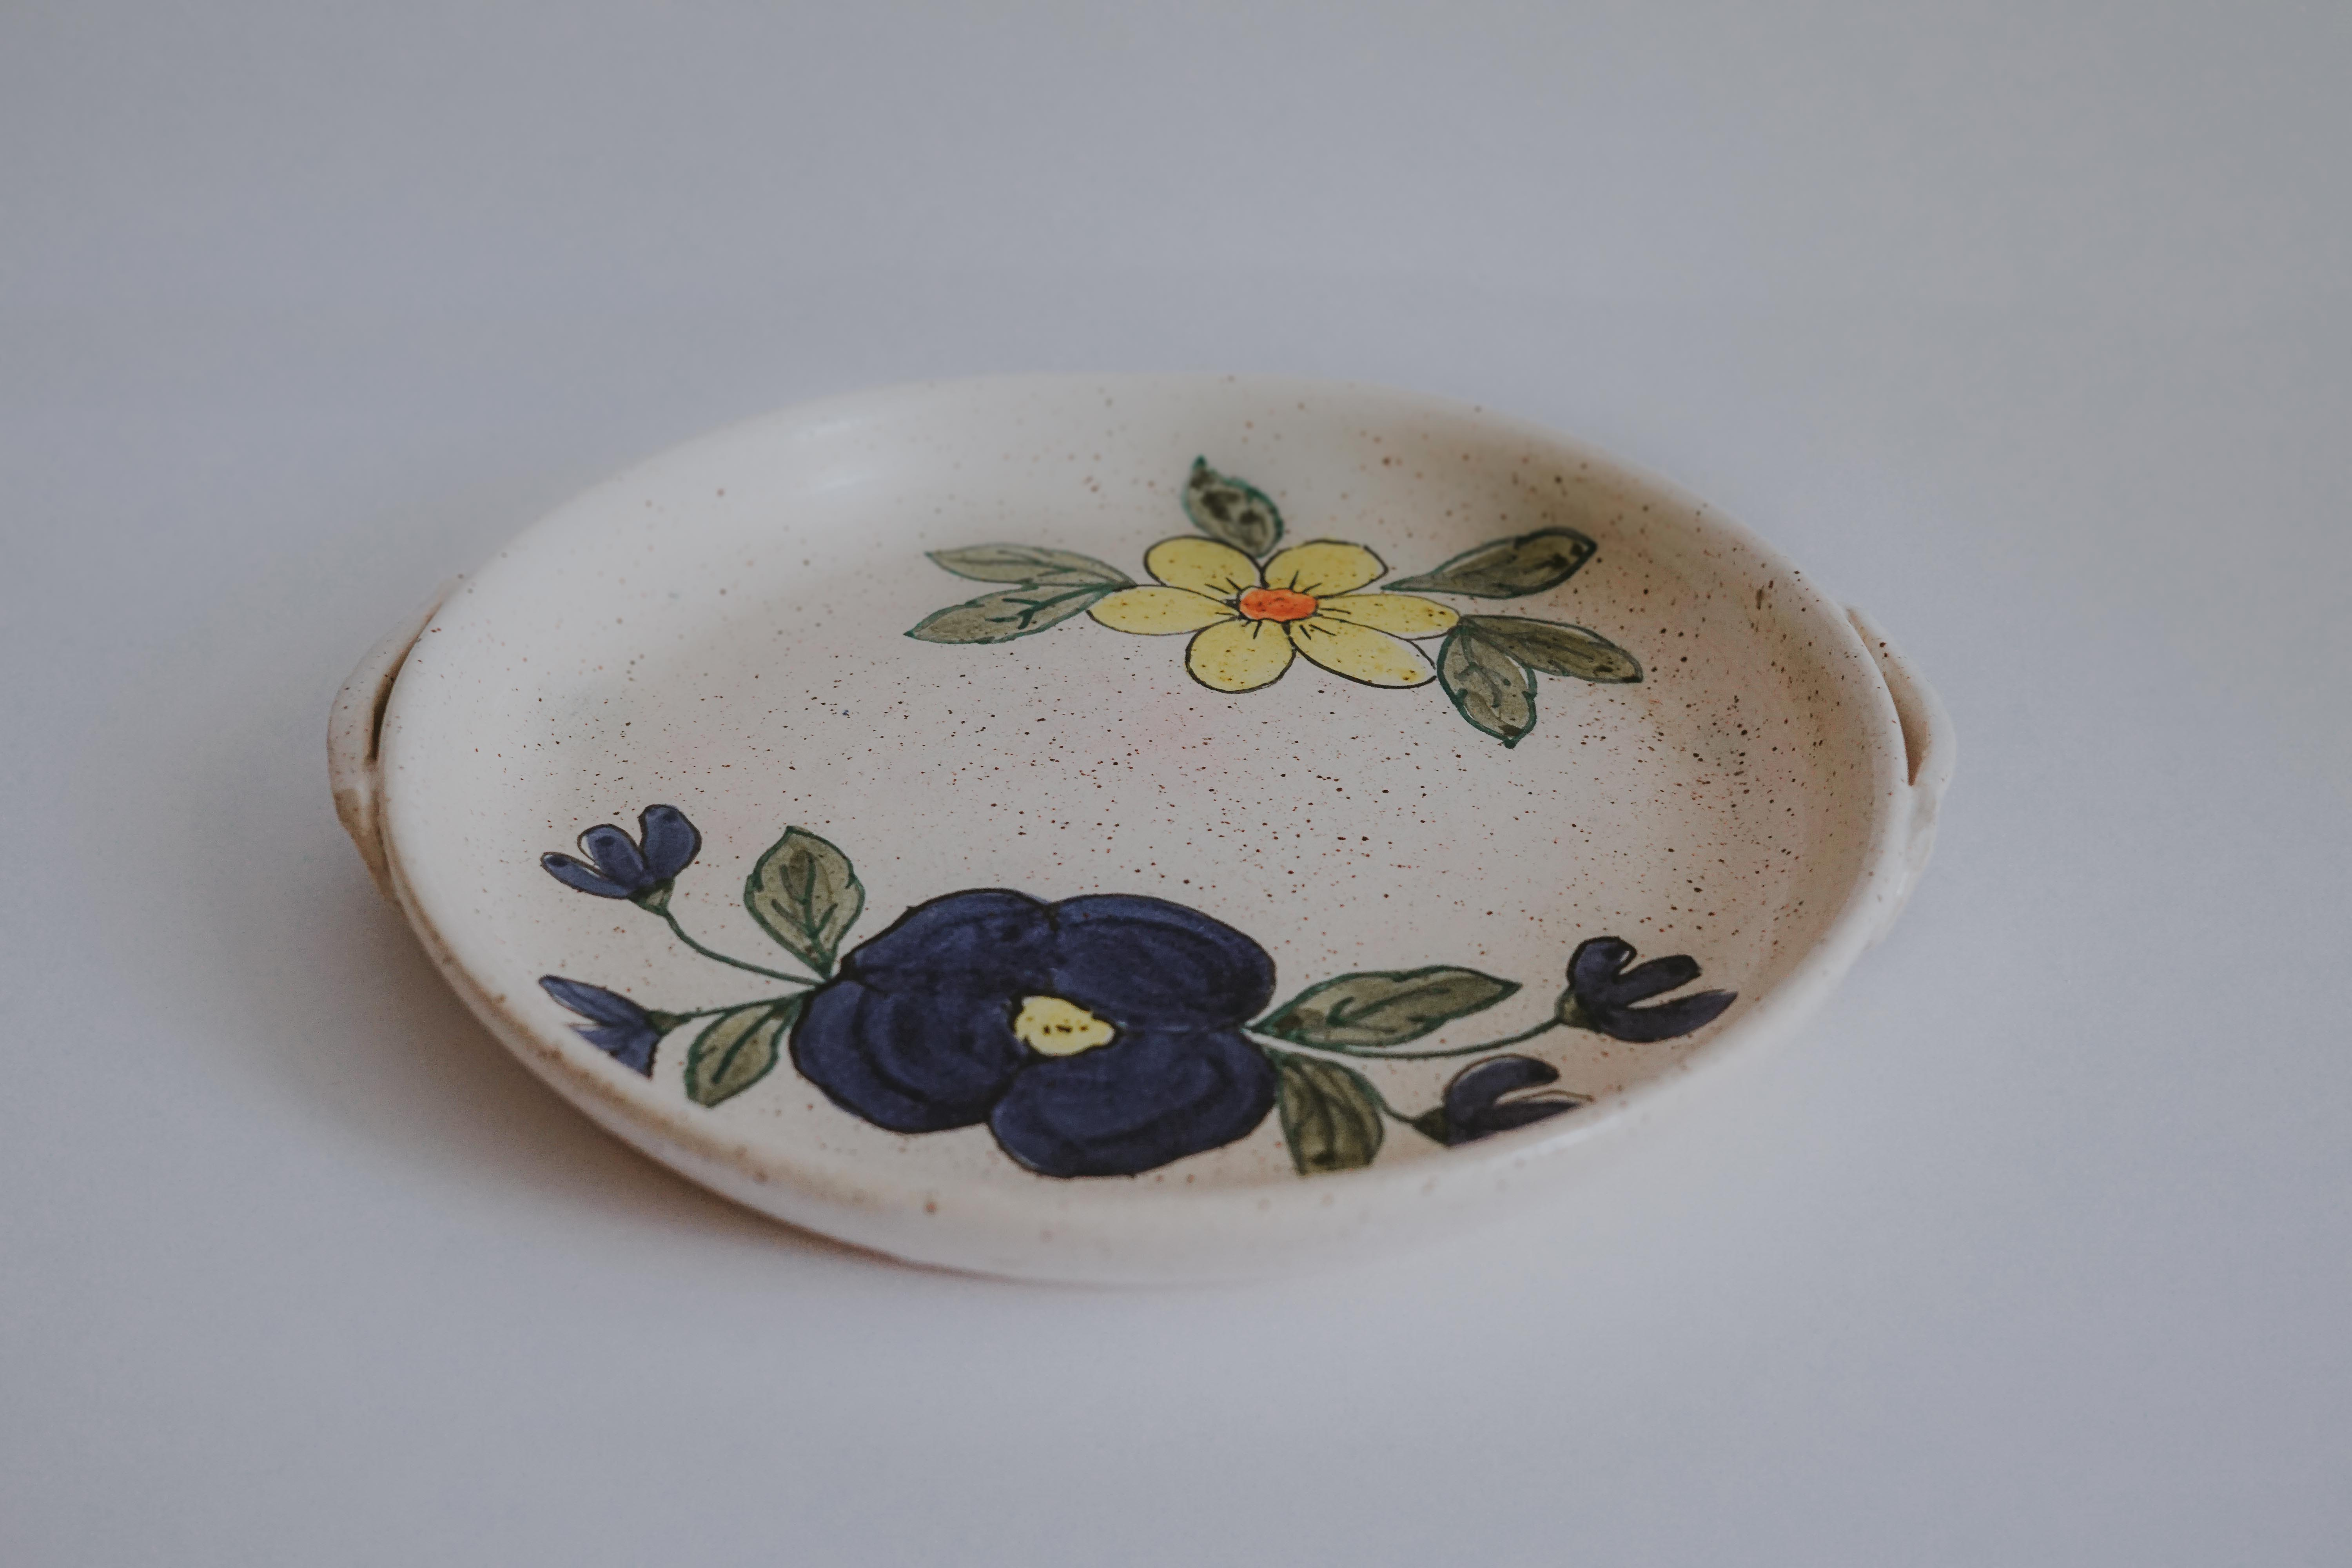 VINTAGE HANDMADE POTTERY SERVING DISH WITH FLOWER MOTIF